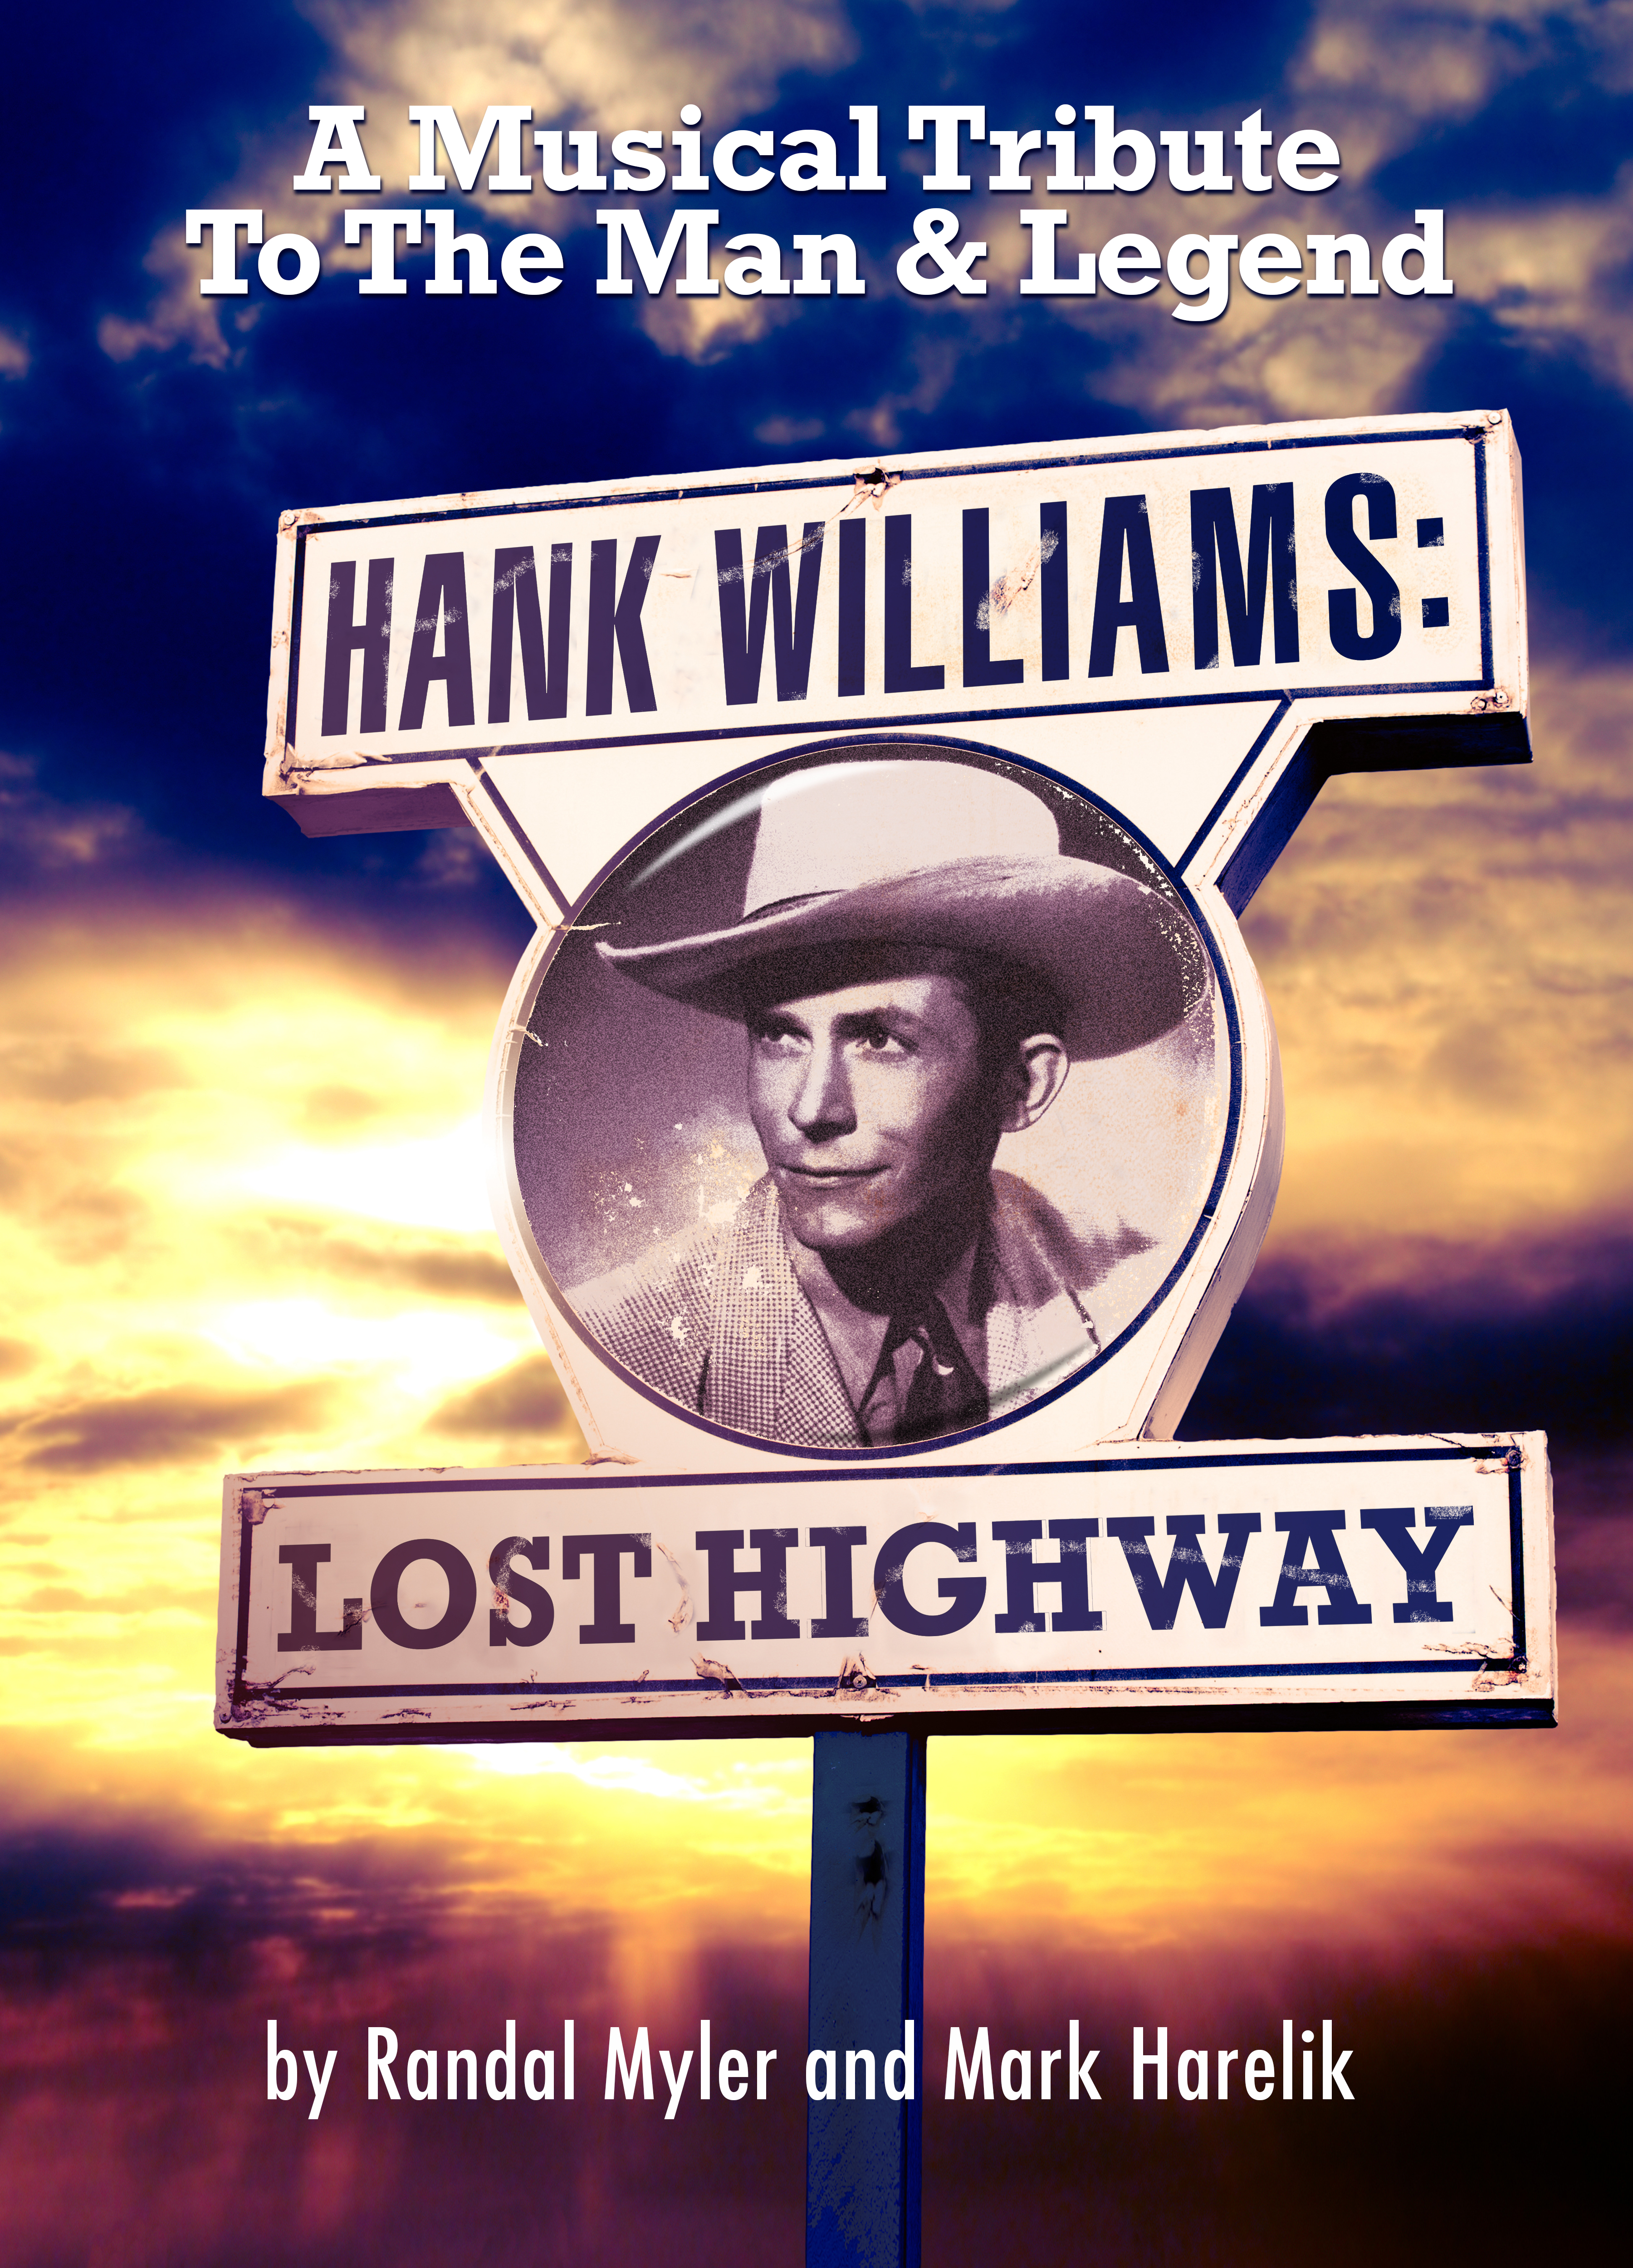 Hank Williams: Lost Highway